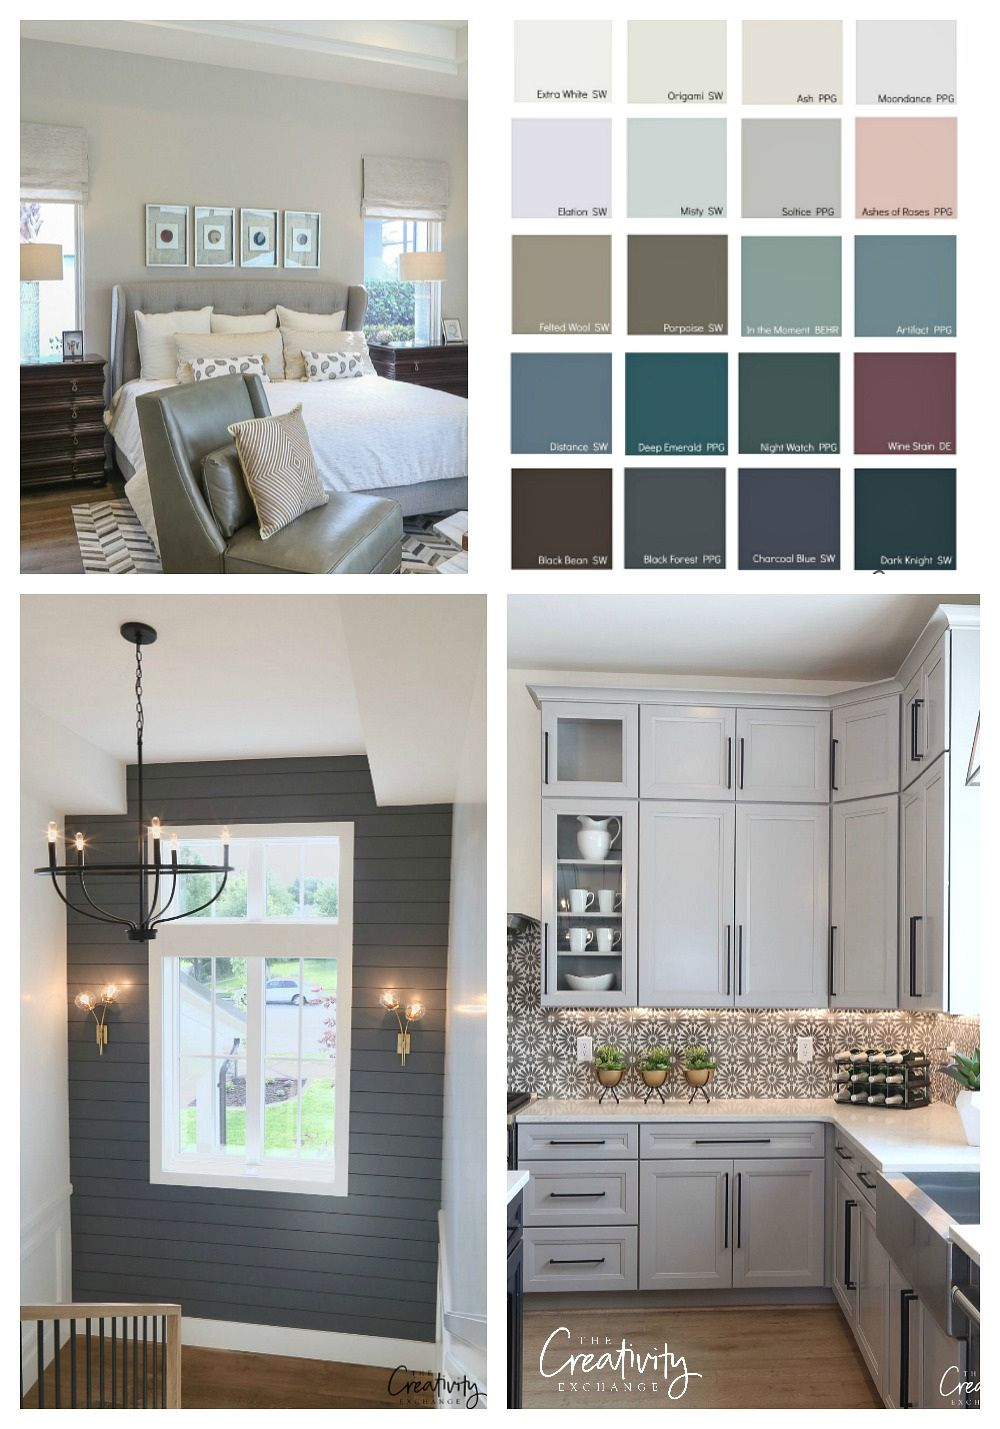 best clark kensington paint colors for cream kitchen on sherwin williams 2021 color trends id=75397